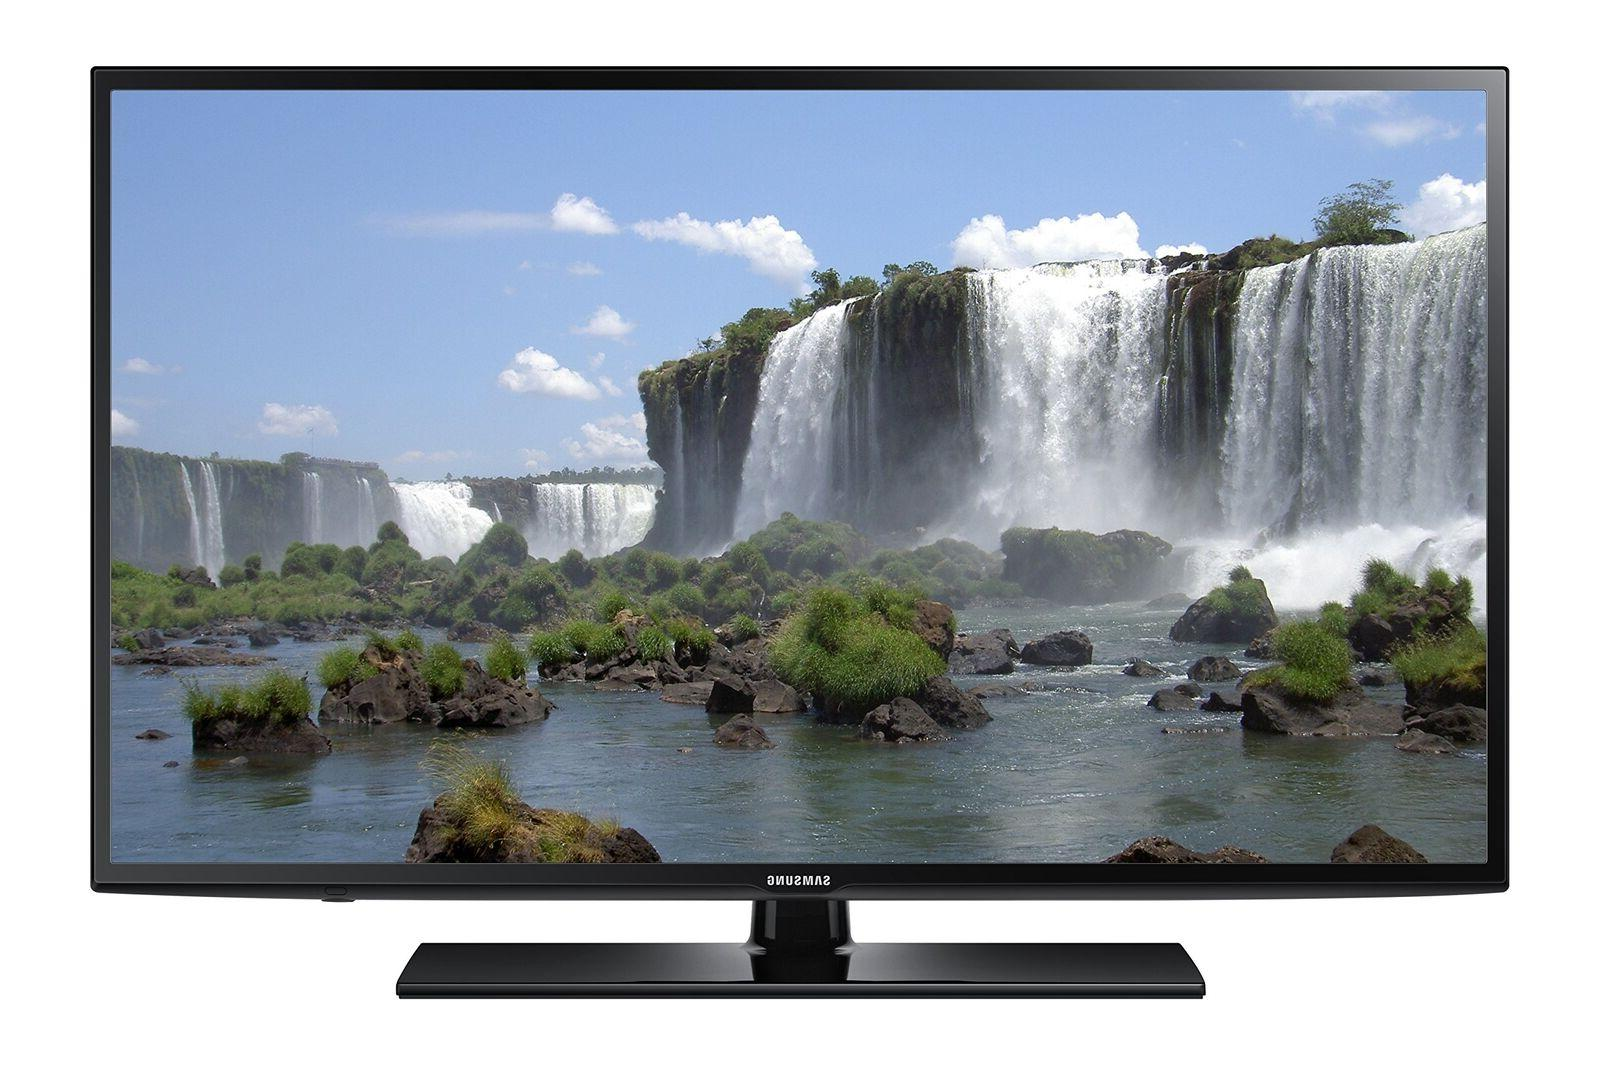 Samsung 1080p Smart LED TV